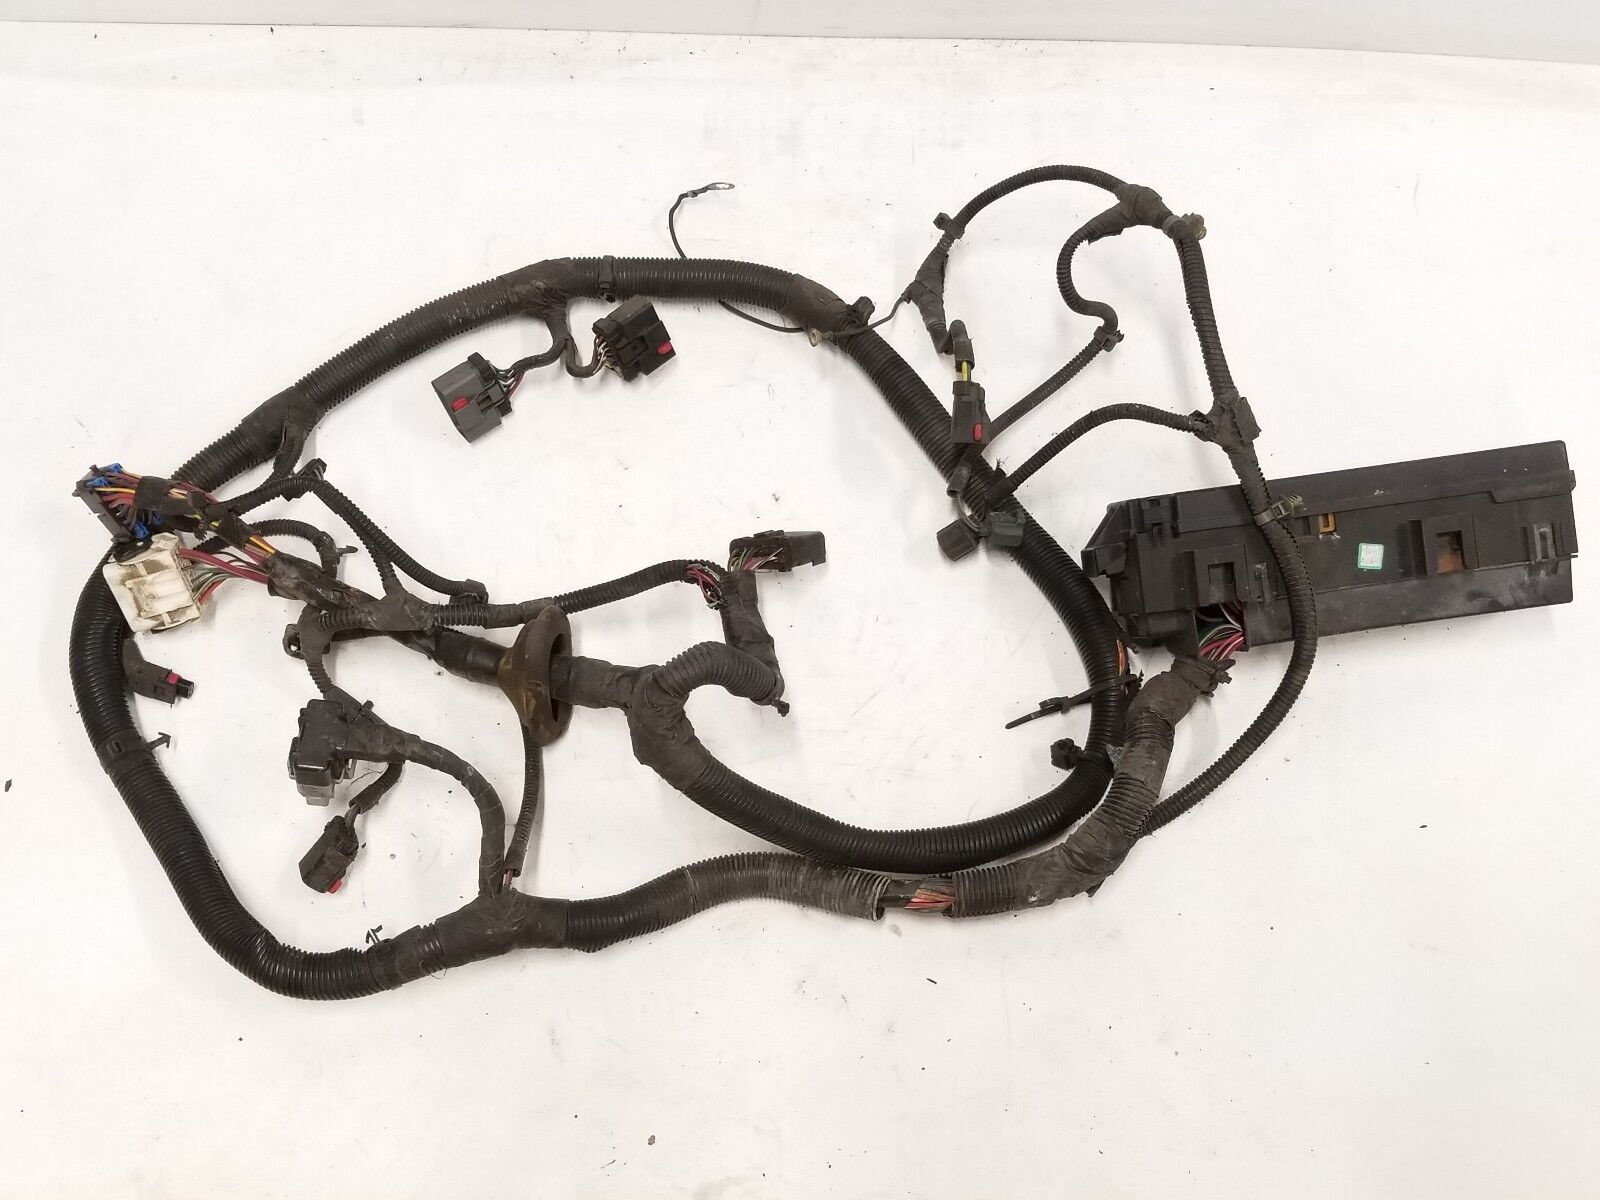 Used 2004 Jeep Wrangler Engines And Components For Sale Wiring Harness Tj Underhood Firewall Fusebox Relay 24l 04t